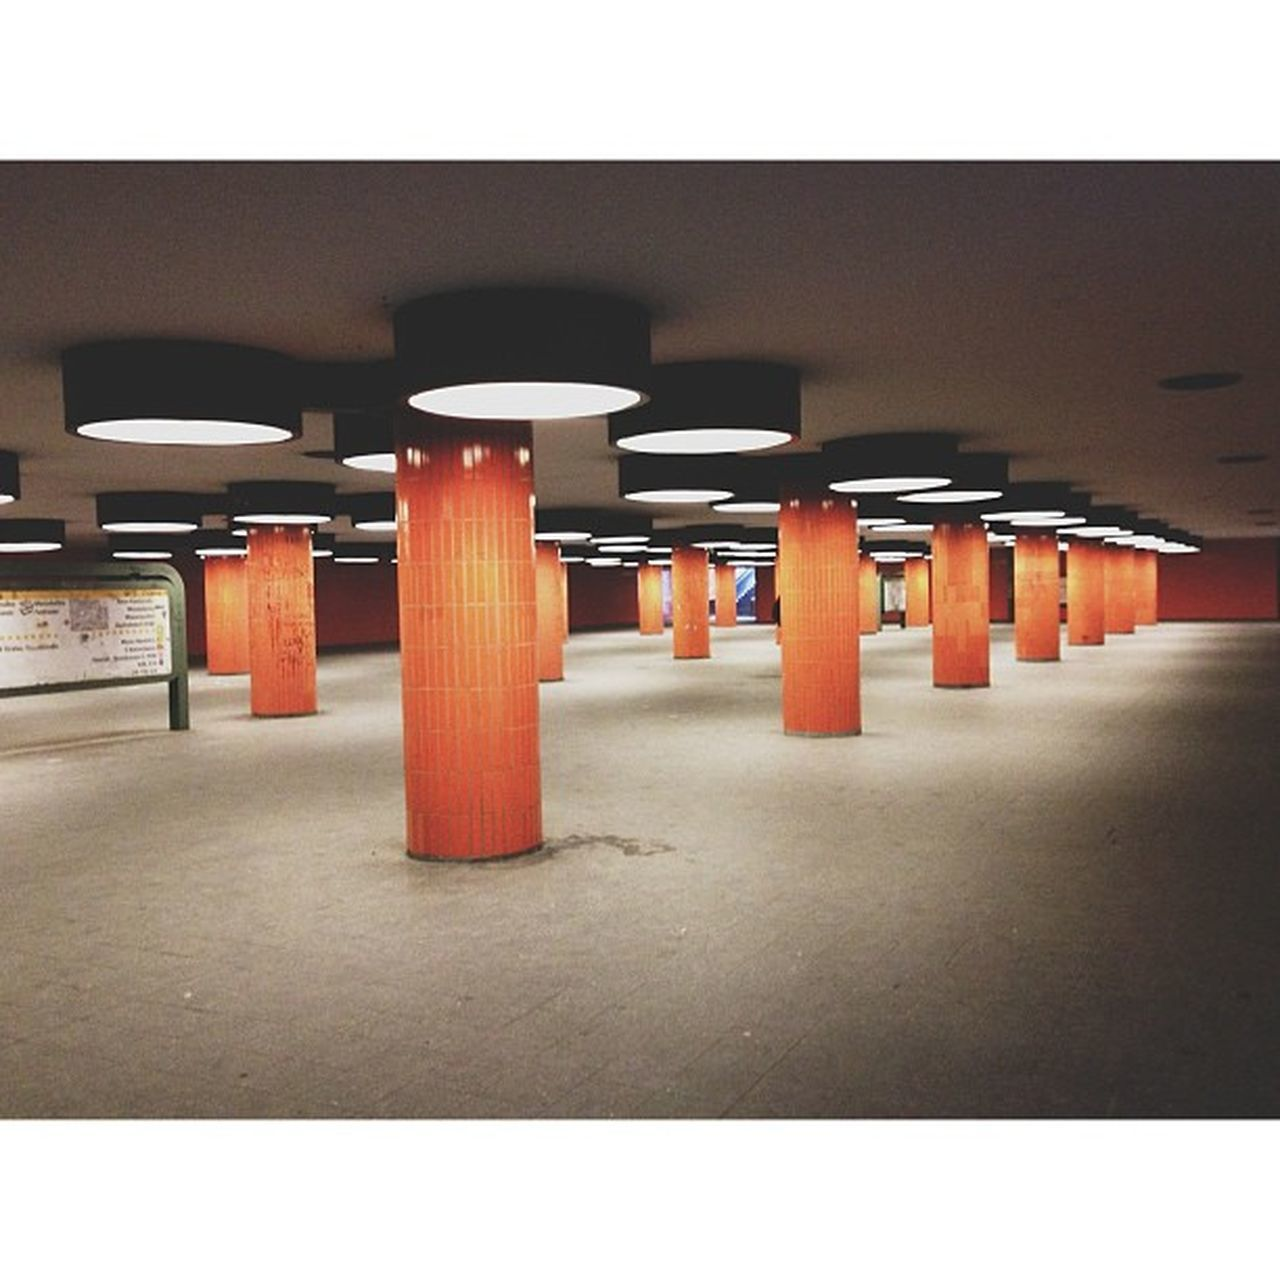 in a row, architectural column, illuminated, ceiling, architecture, built structure, no people, indoors, pillar, parking garage, day, basement